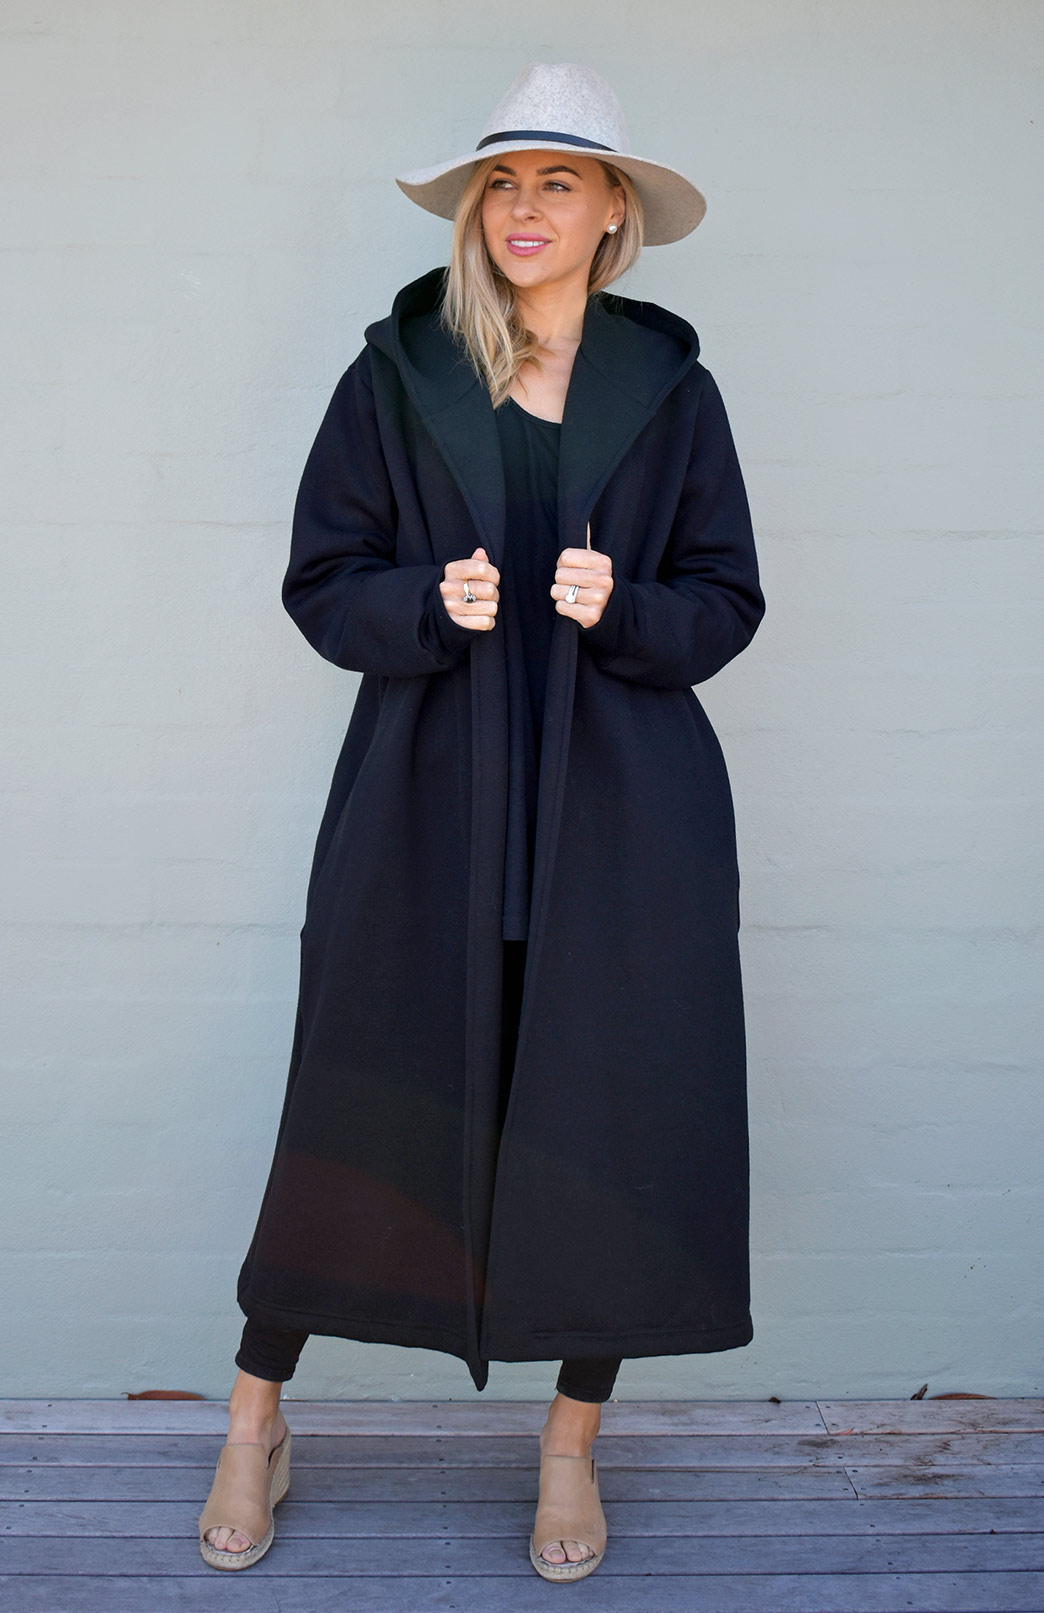 Potter Coat - Women's Black Pure Merino Wool Winter Coat with Side Pockets, Fleece Lining and Hood - Smitten Merino Tasmania Australia